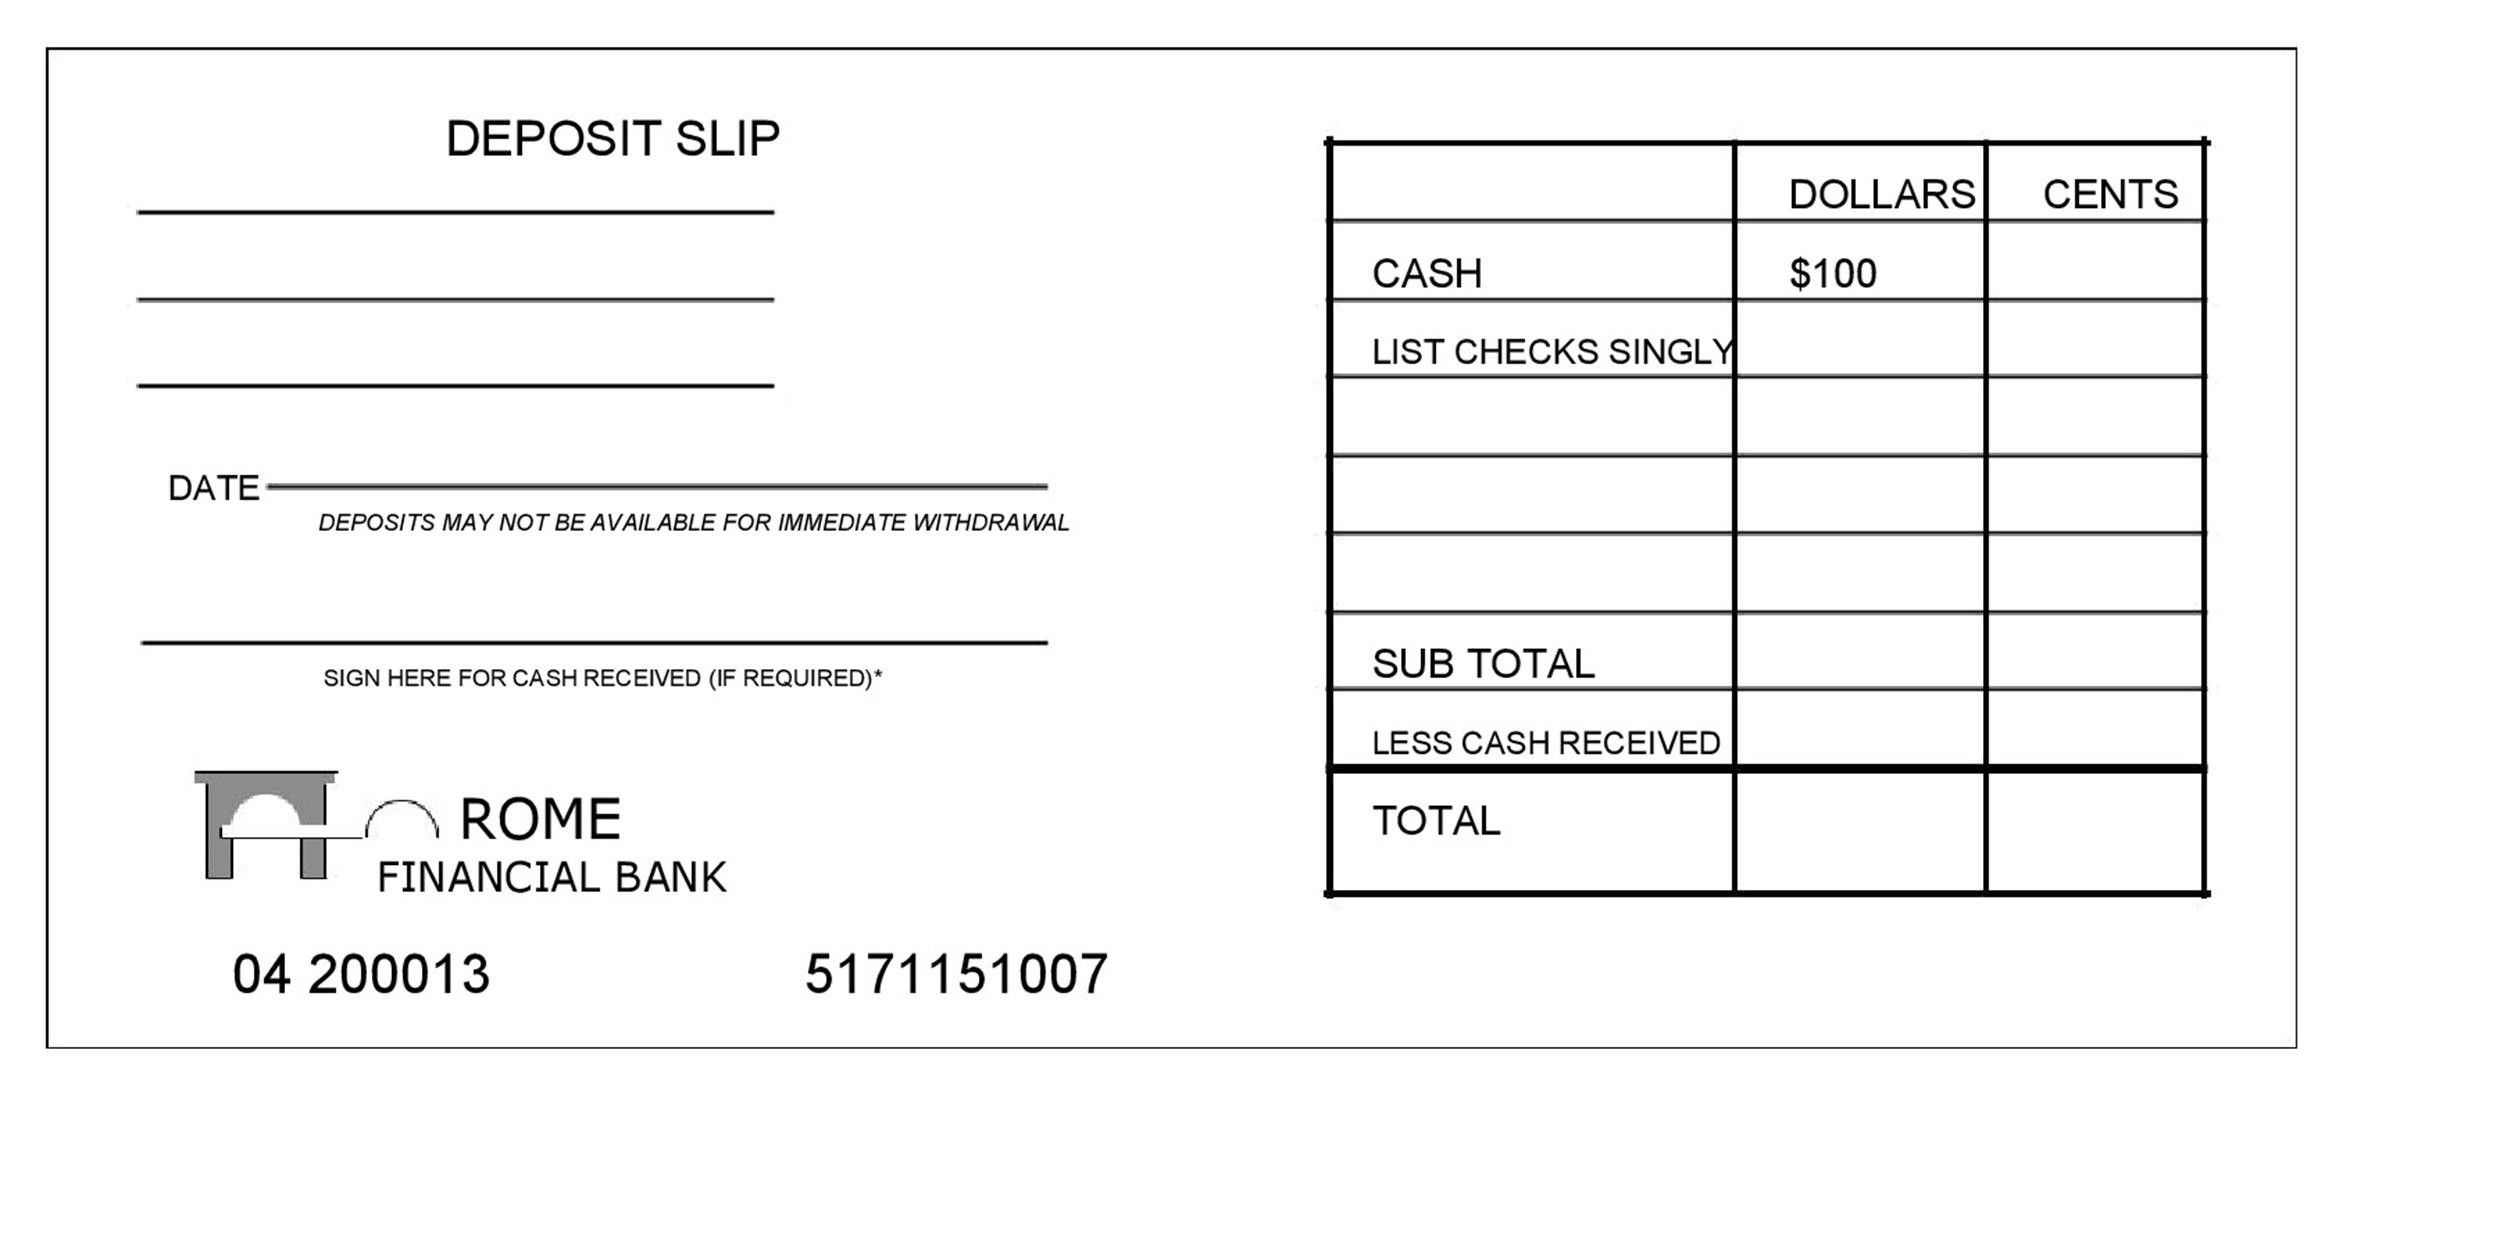 cash deposit form template  deposit templates - Makar.bwong.co